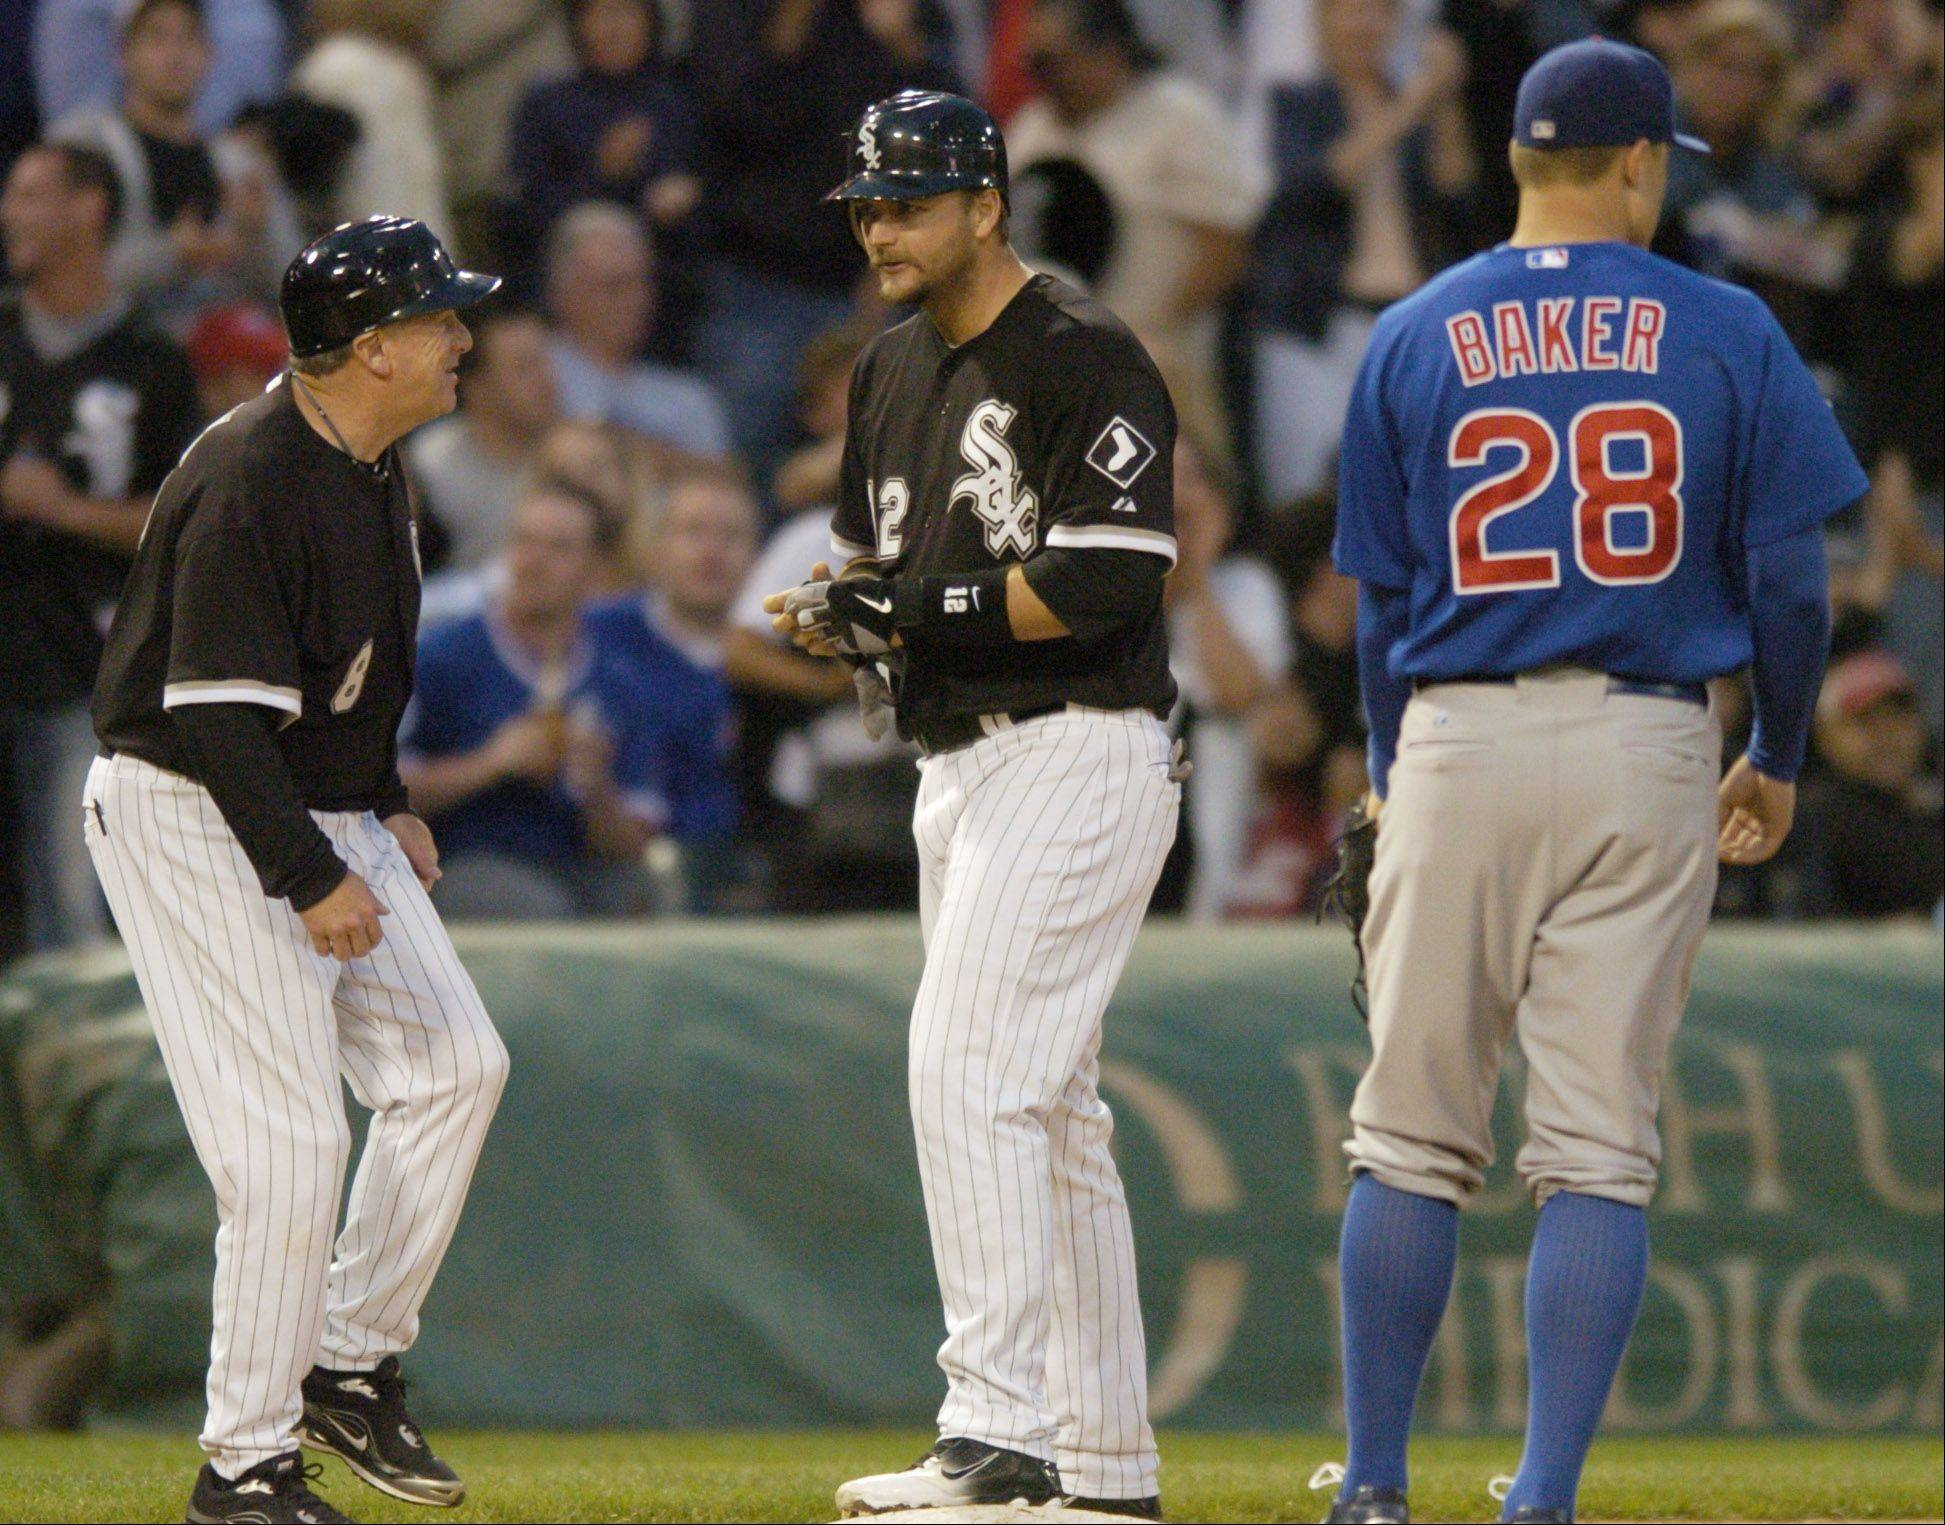 A.J. Pierzynski of the Sox chats with third base coach Jeff Cox after hitting a two-run triple as Cubs third baseman Jeff Baker Stands by the bag during Wednesday's game at U.S. Cellular Field.